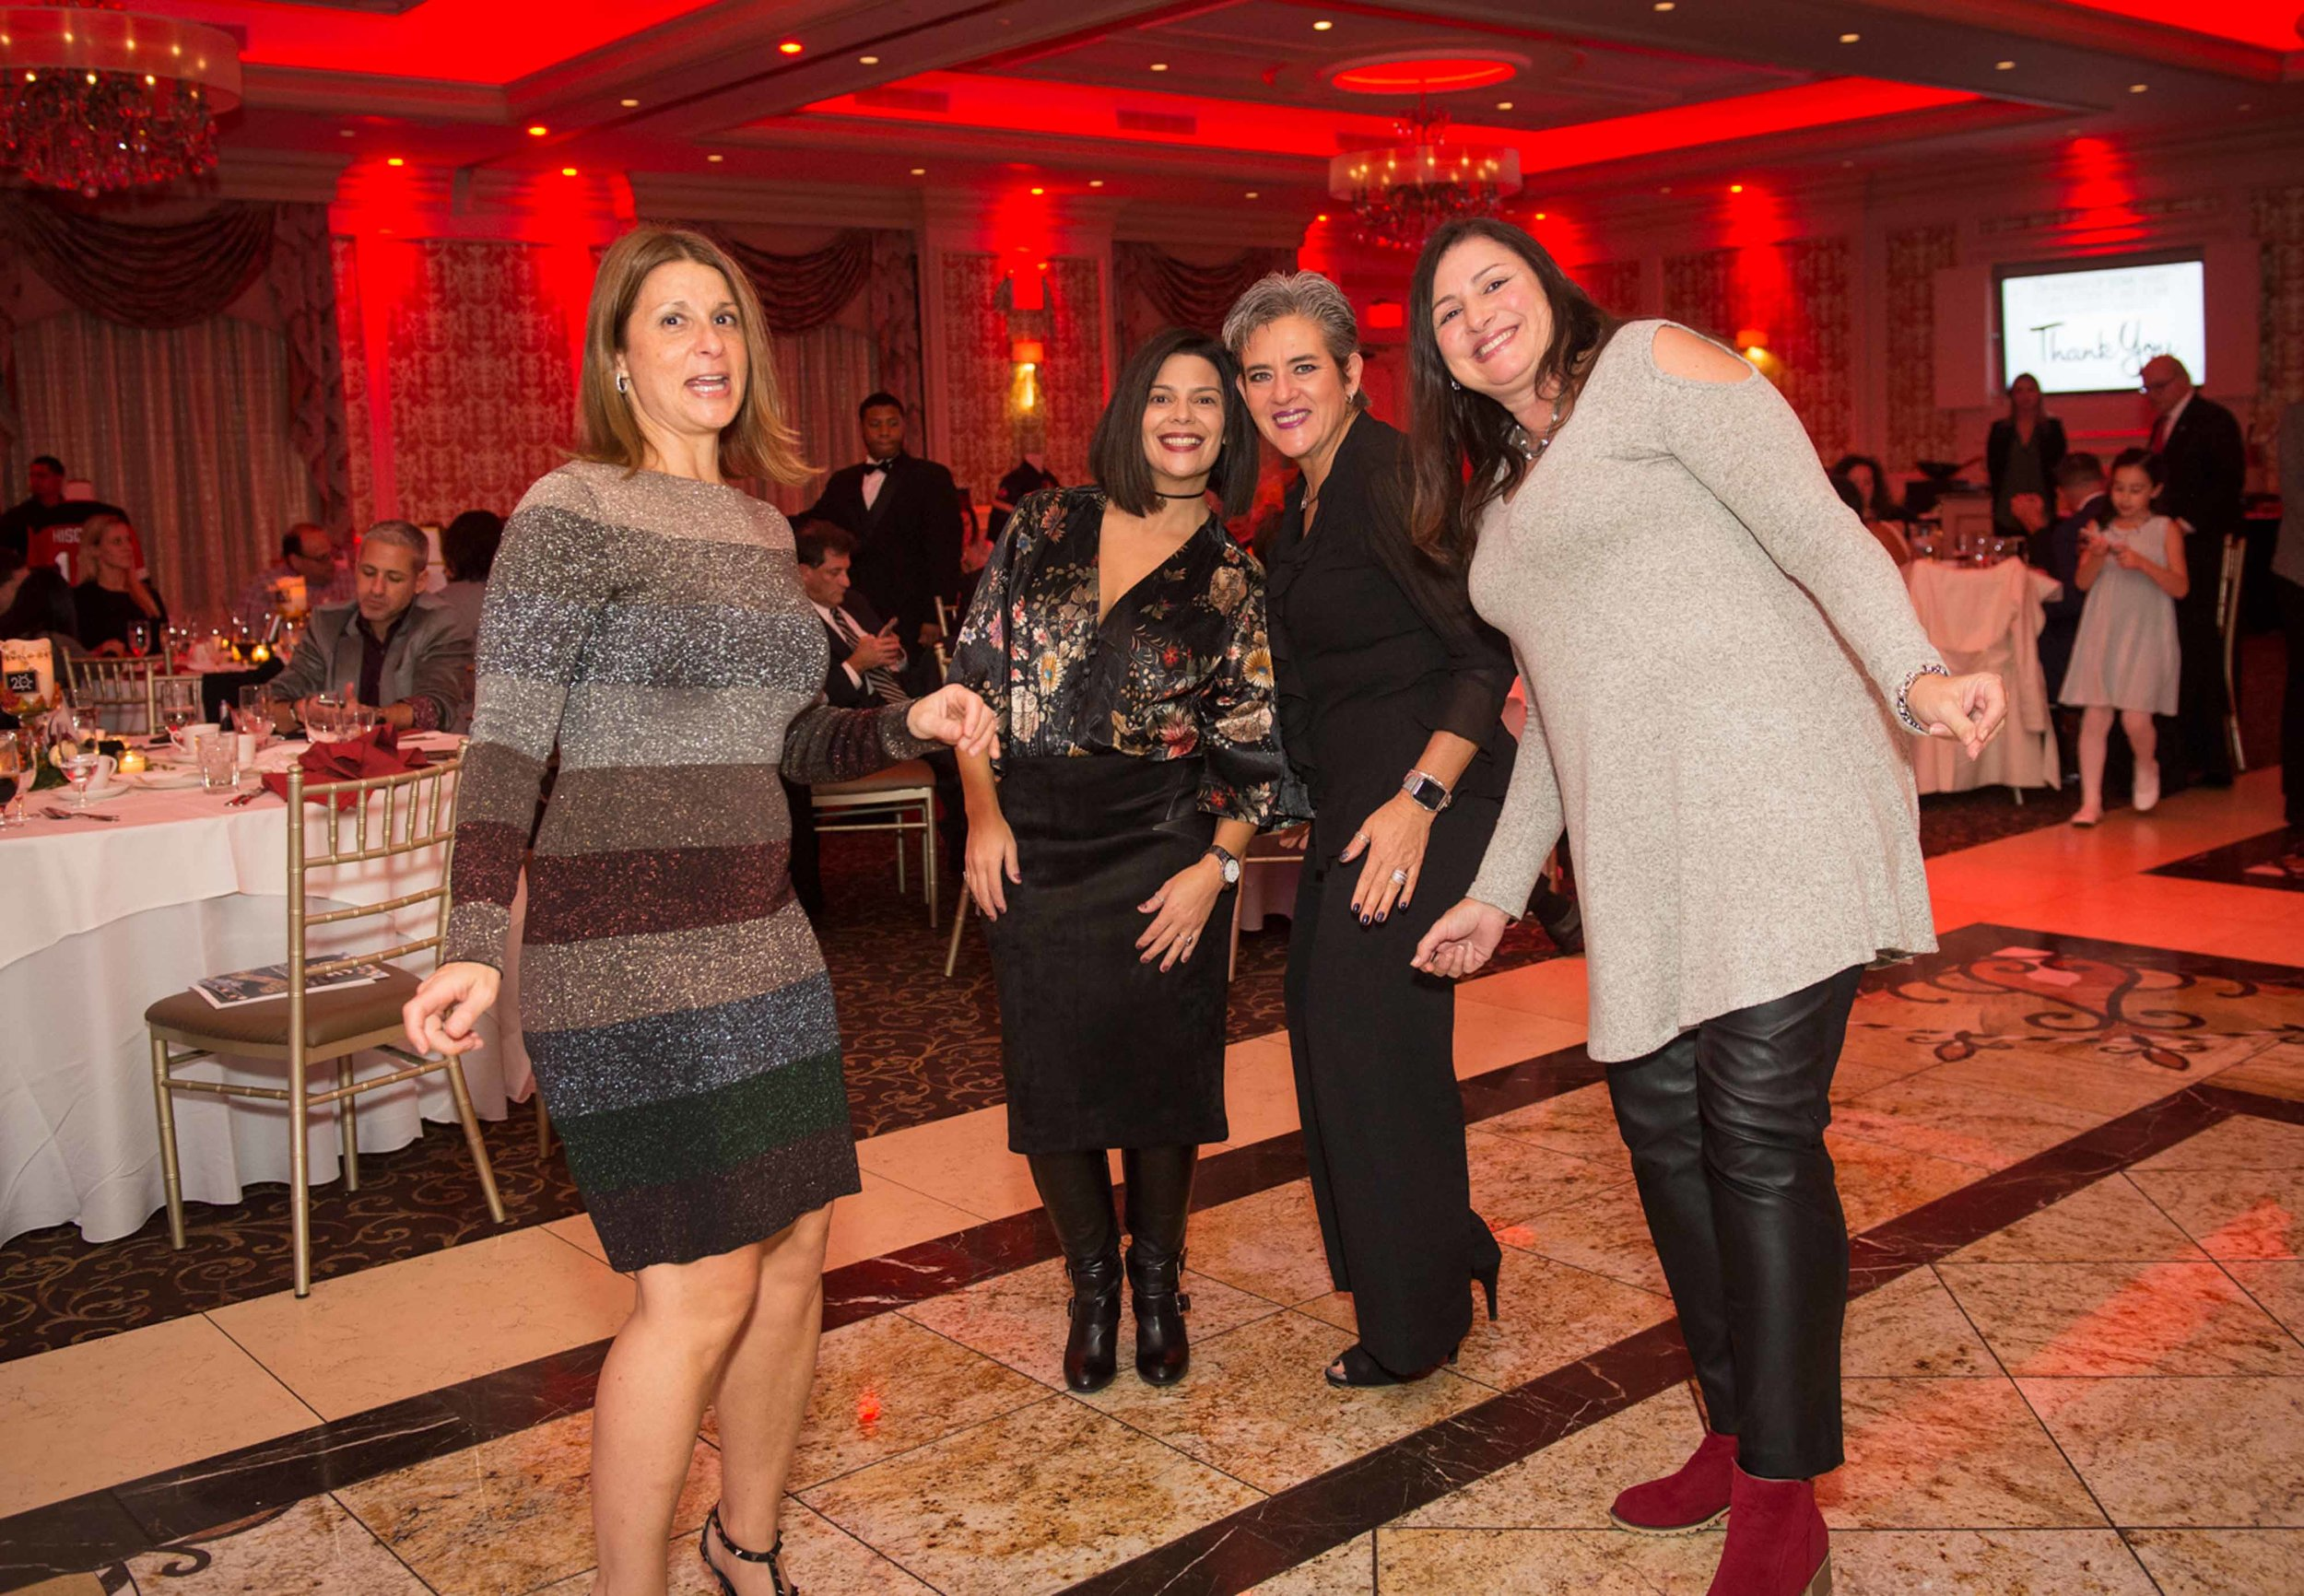 2017-11-10 The EPIC School - Party with a Purpose - Biagios on the Terrace - Paramus NJ-180.jpg